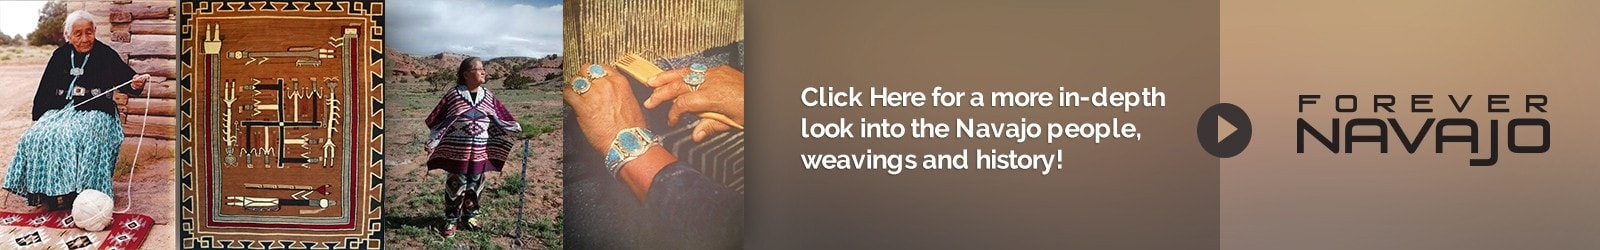 Forever Navajo - Learn about the culture and the traditions of this Native American Indian tribe